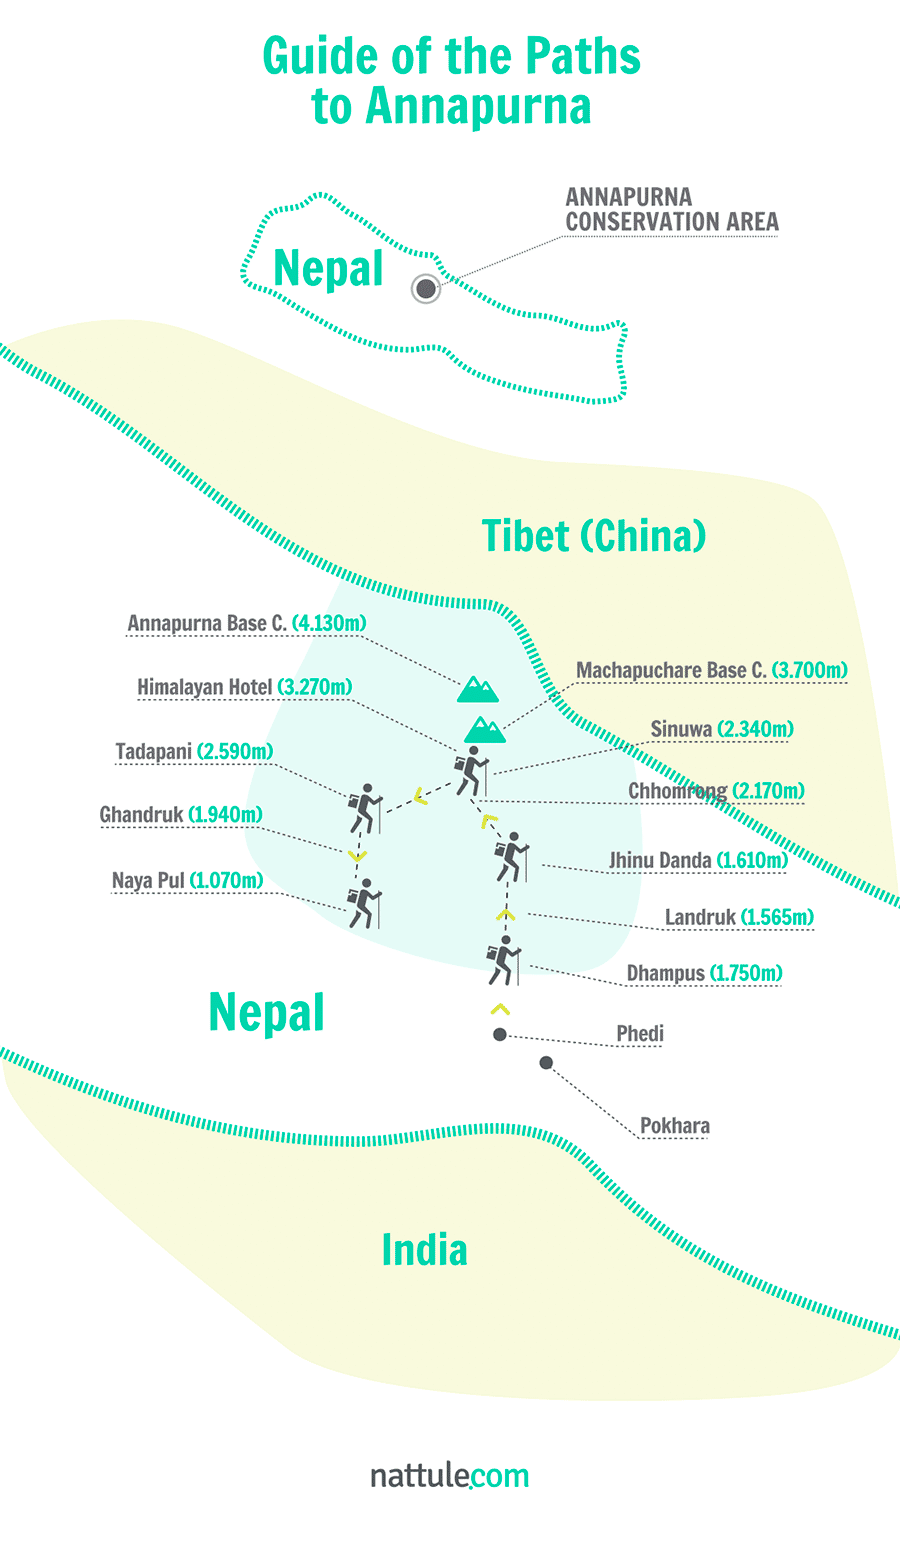 Guide of the Paths to Annapurna